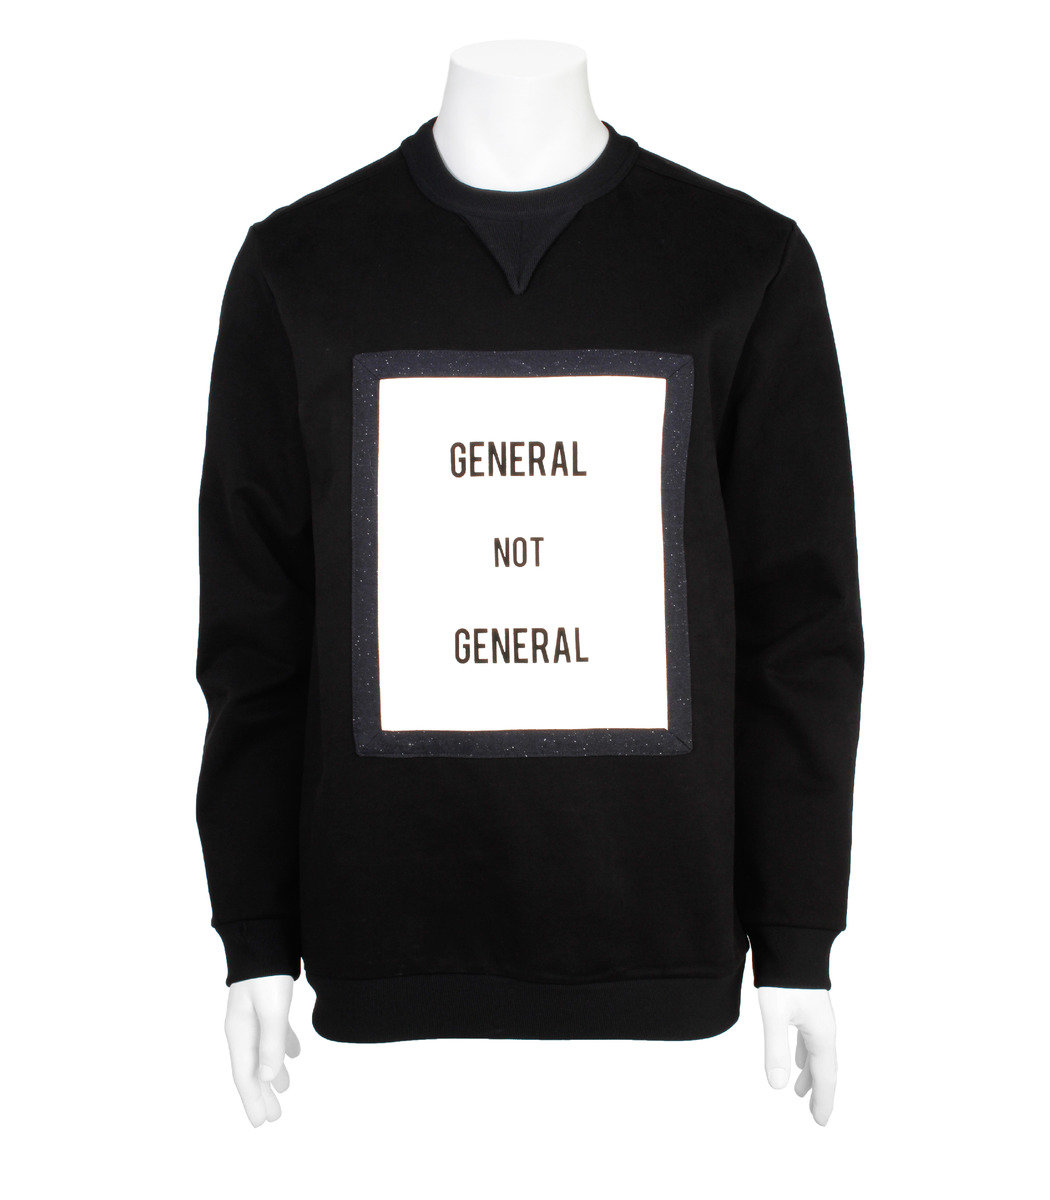 General not general 衛衣